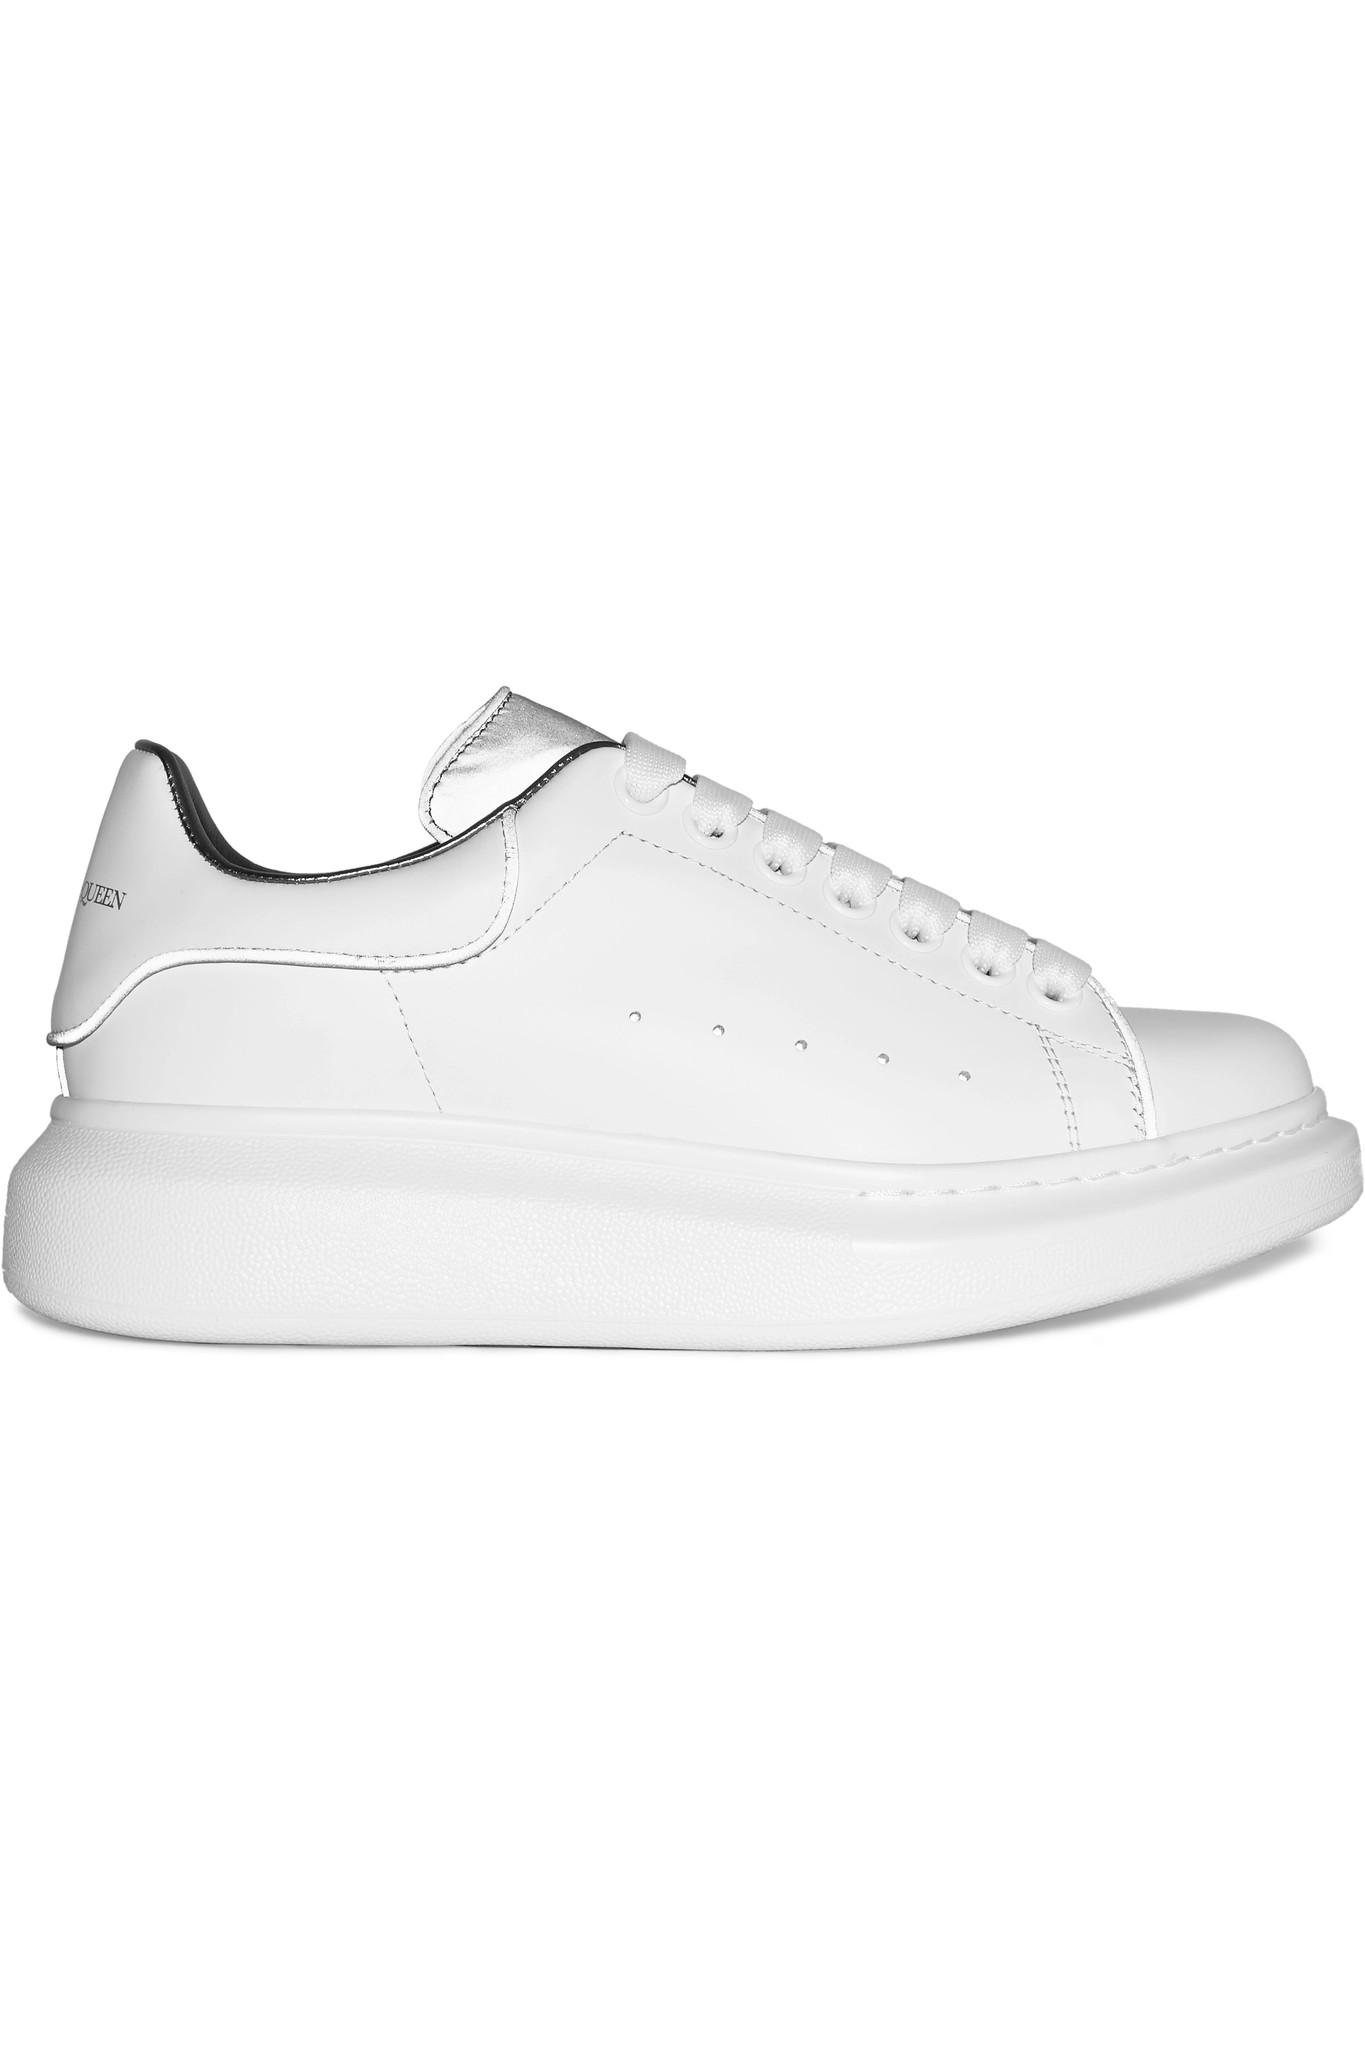 407fd3c4871e4 Lyst - Alexander McQueen Reflective-trimmed Leather Exaggerated-sole ...